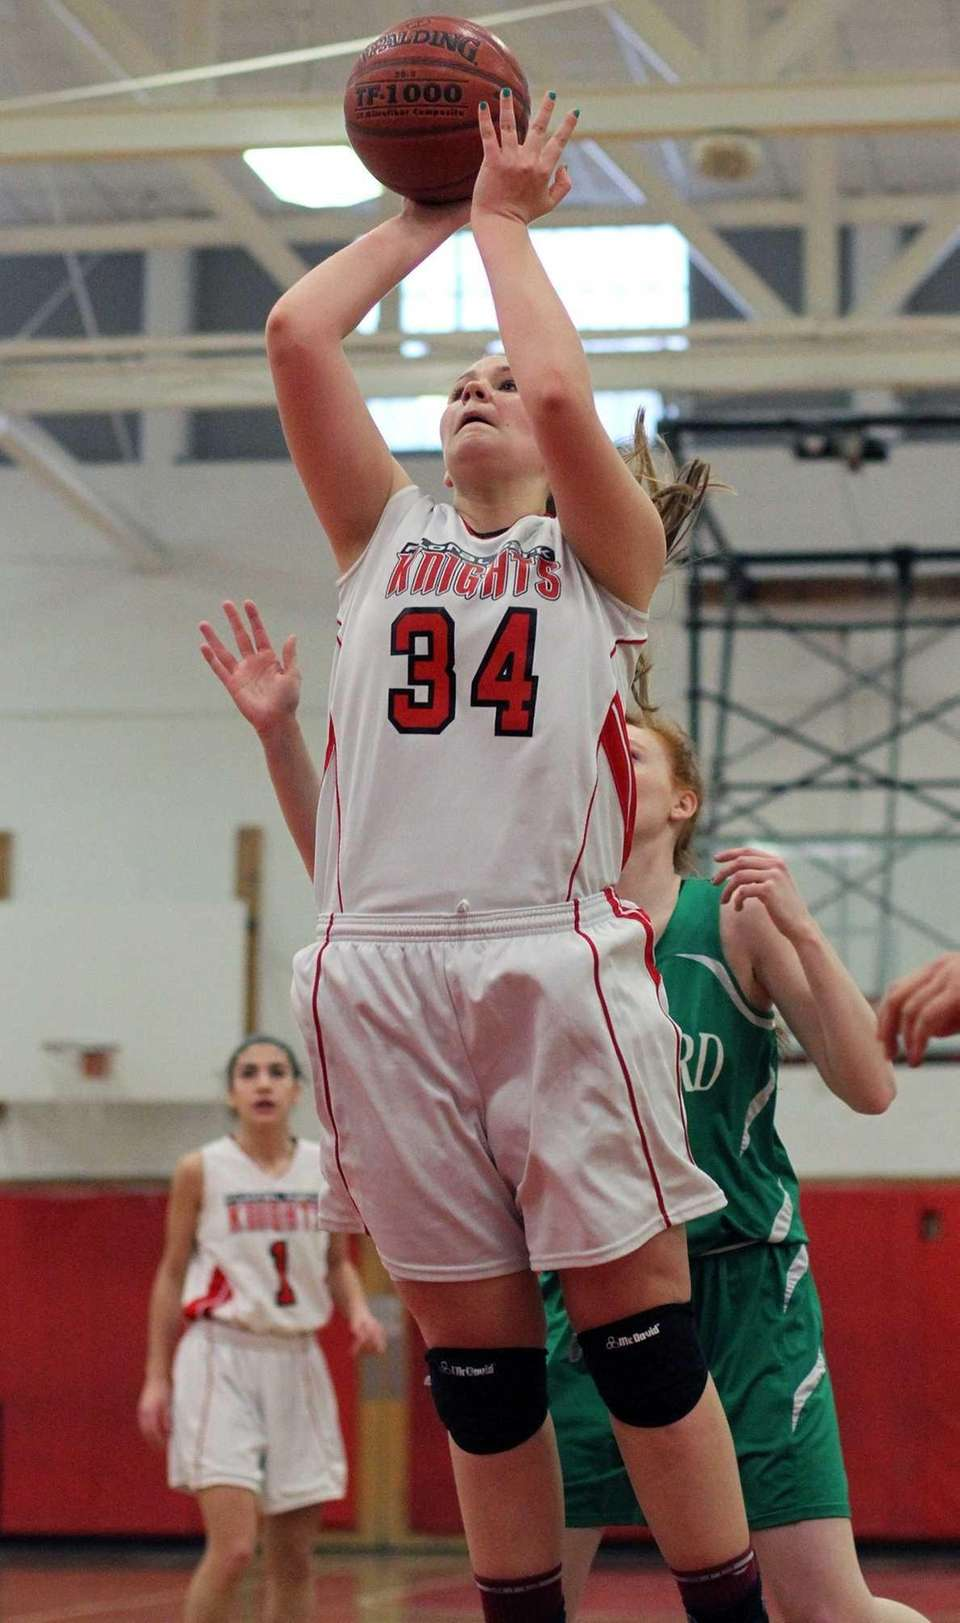 Floral Park's Lorraine Hickman shoots up the middle.